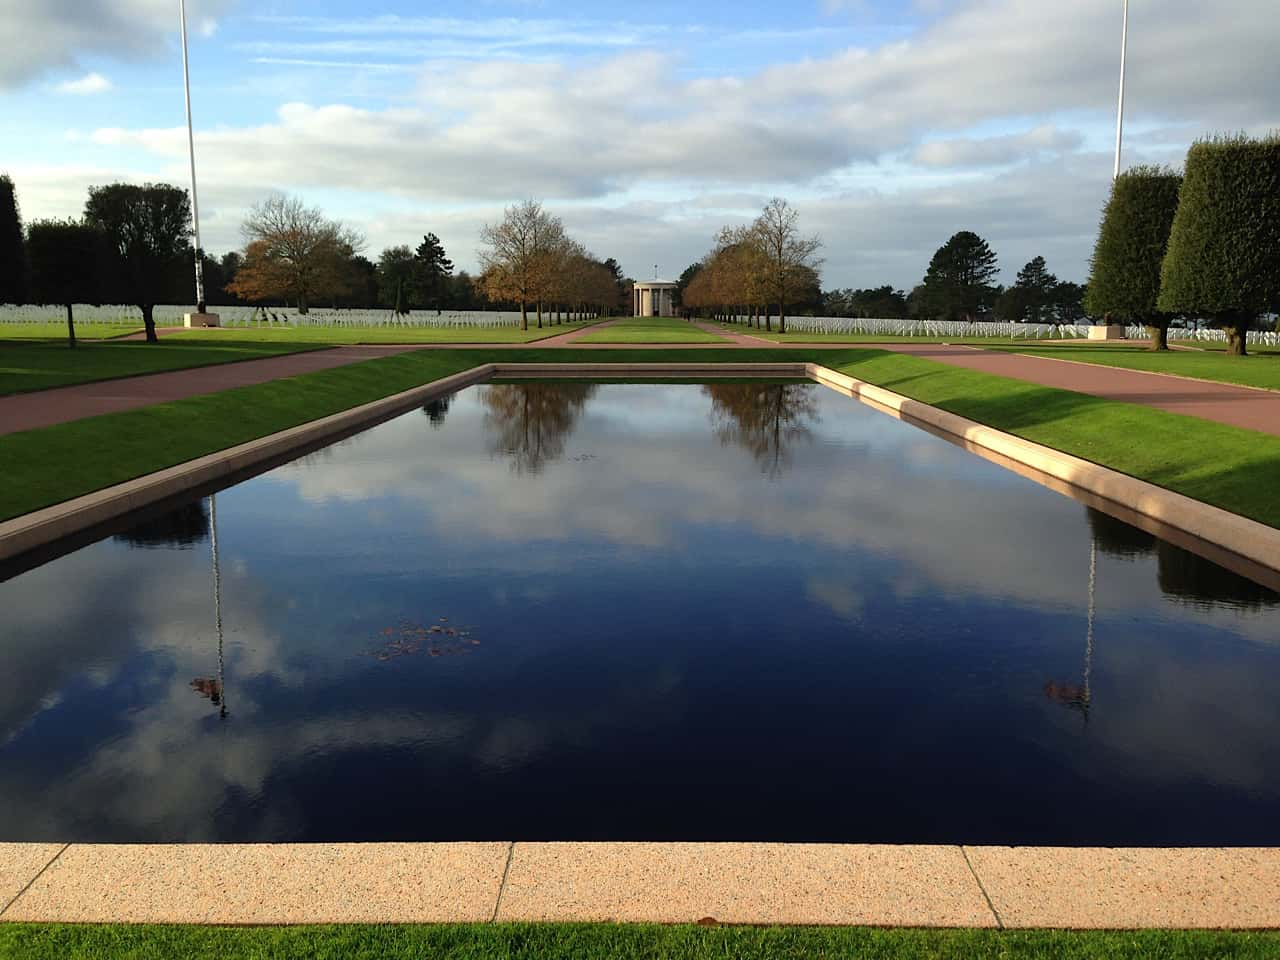 The reflecting pool at the Normandy Memorial